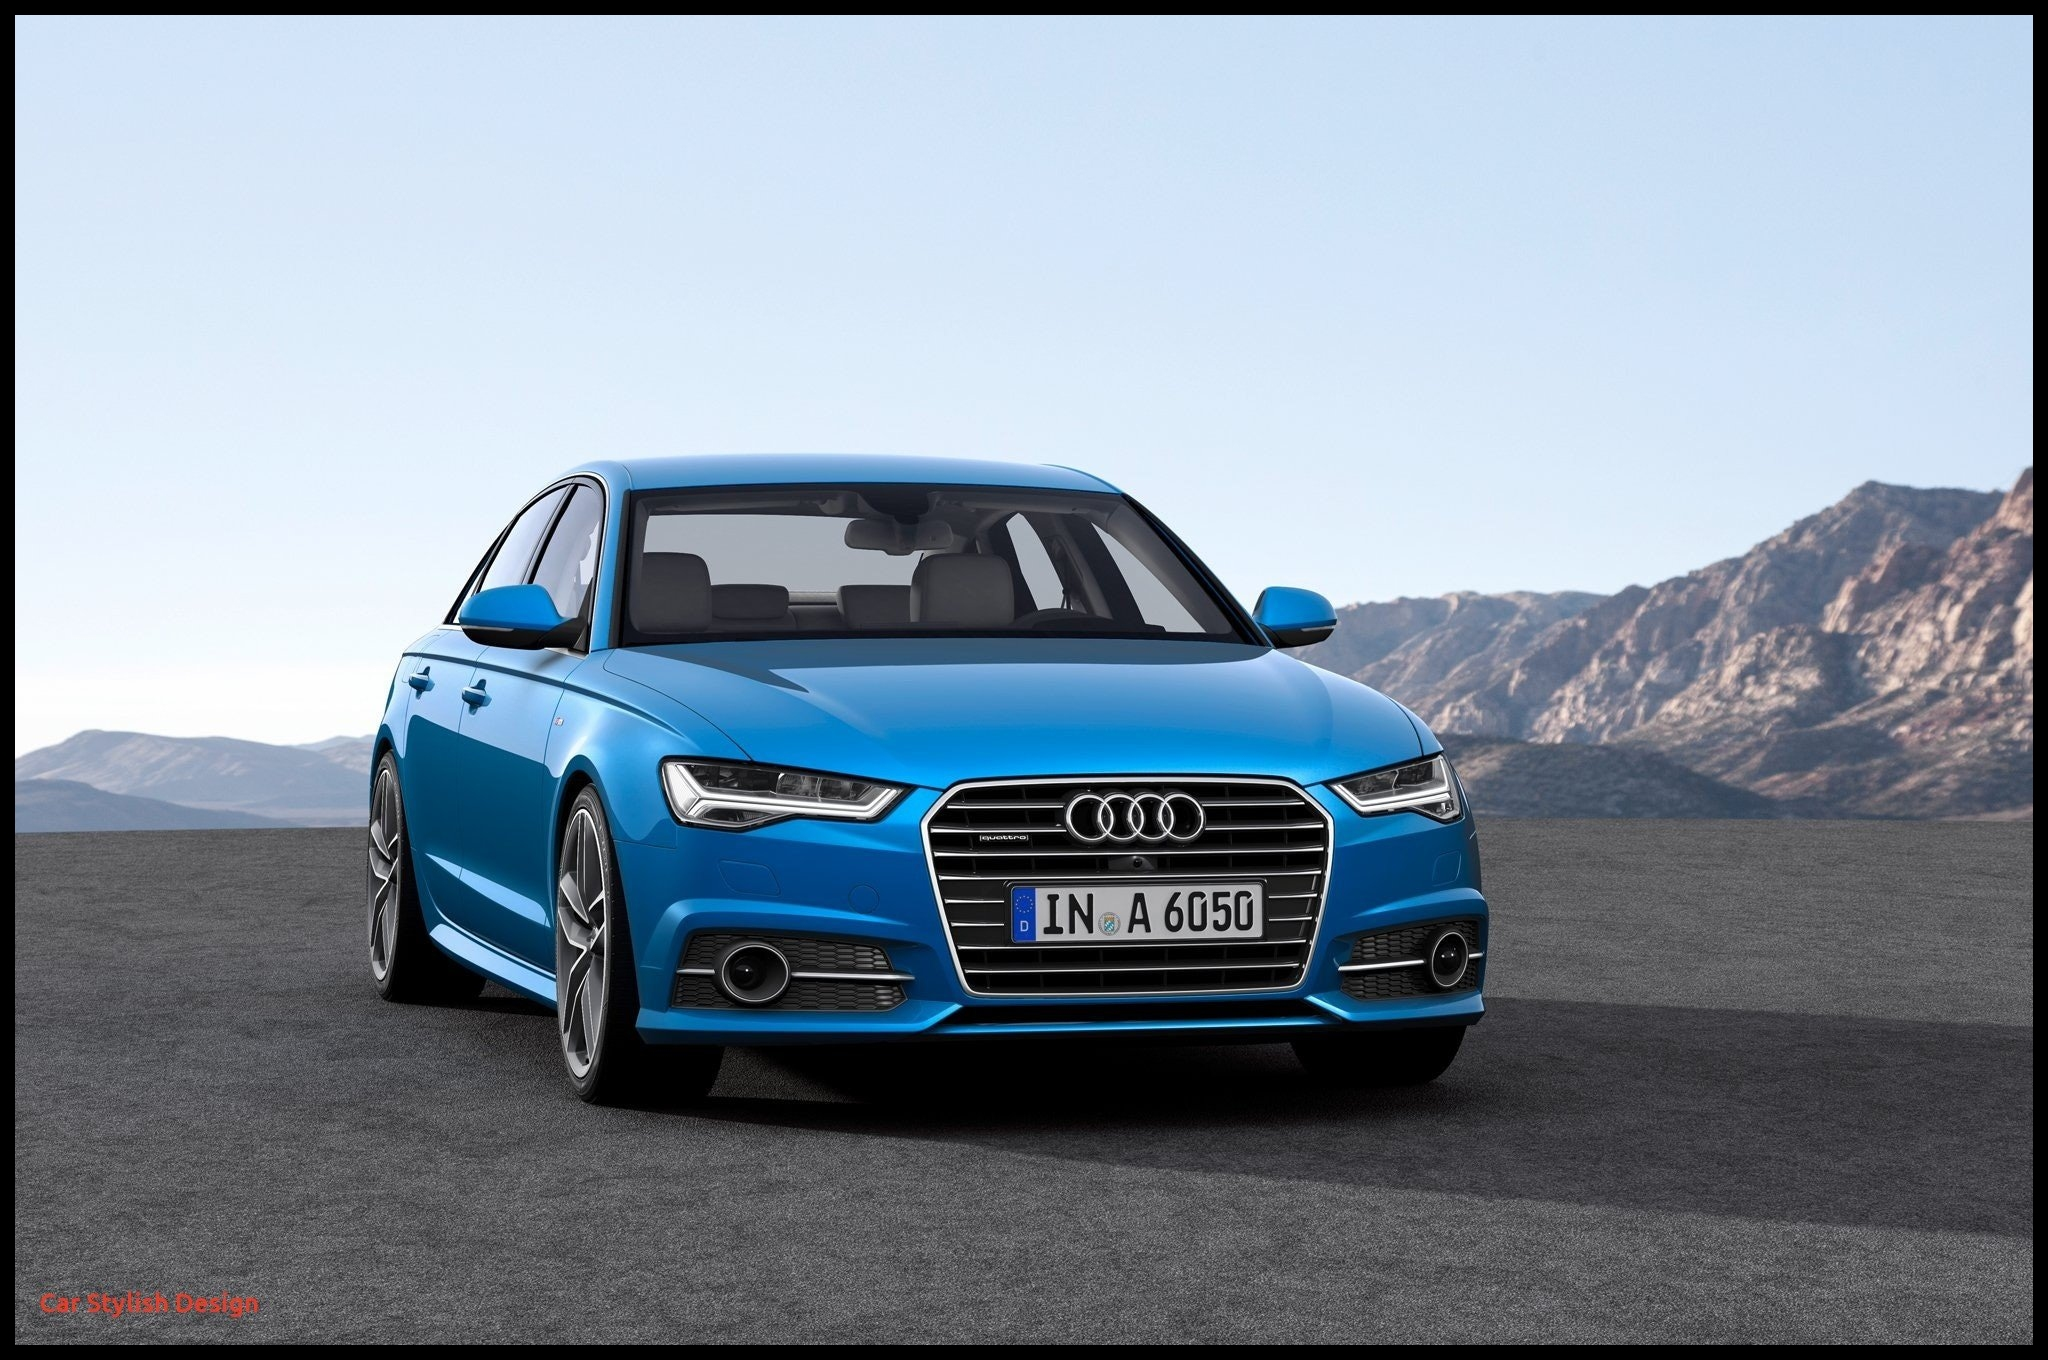 Audi A 6 Unique Audi A6 Avant 2017 1600 0d Auto 2018 J 9 X O 2010 Review Uk Manual